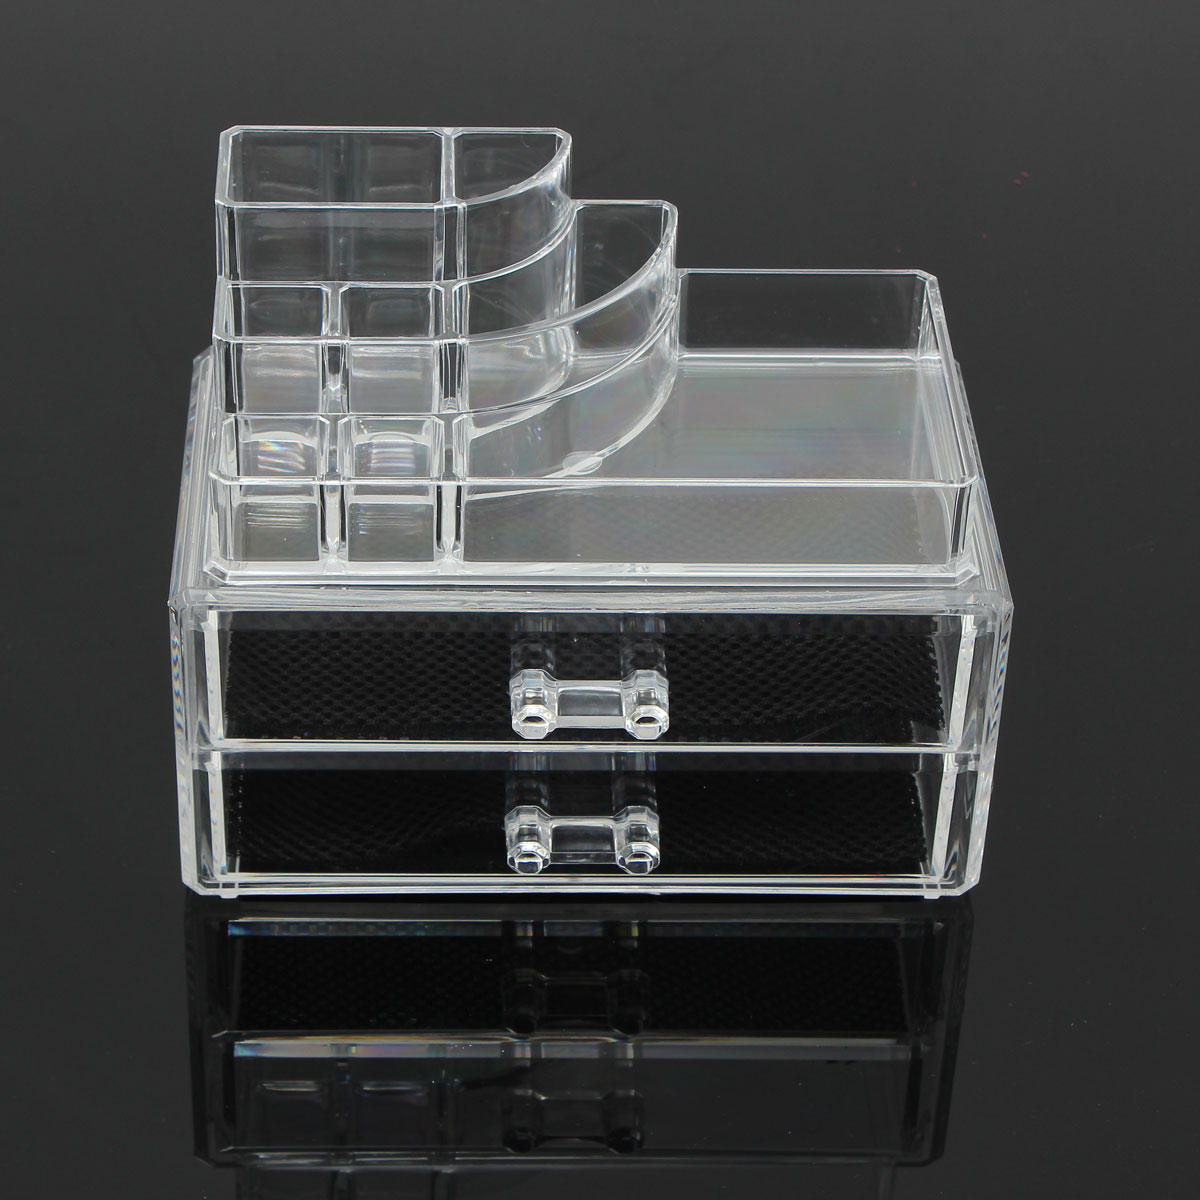 line Buy Wholesale 19 rack drawer from China 19 rack